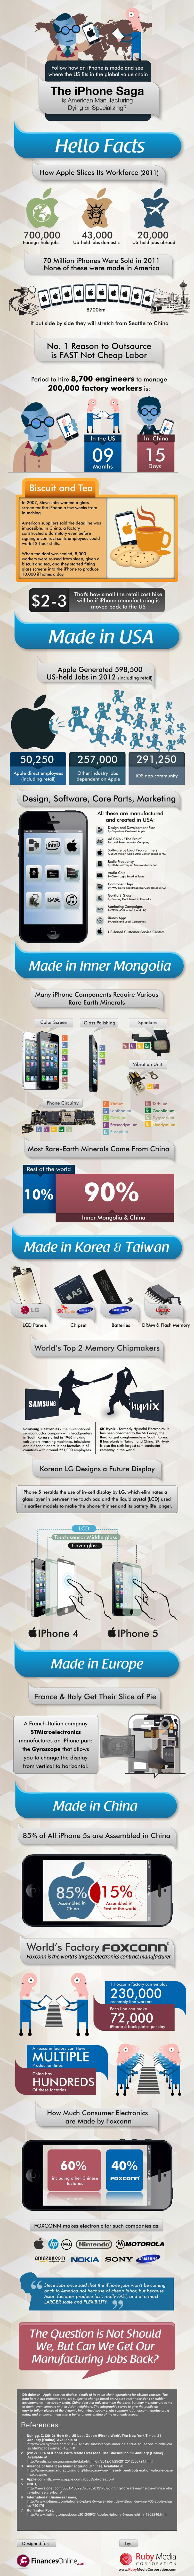 Infographic showing the sources of iPhone components around the world